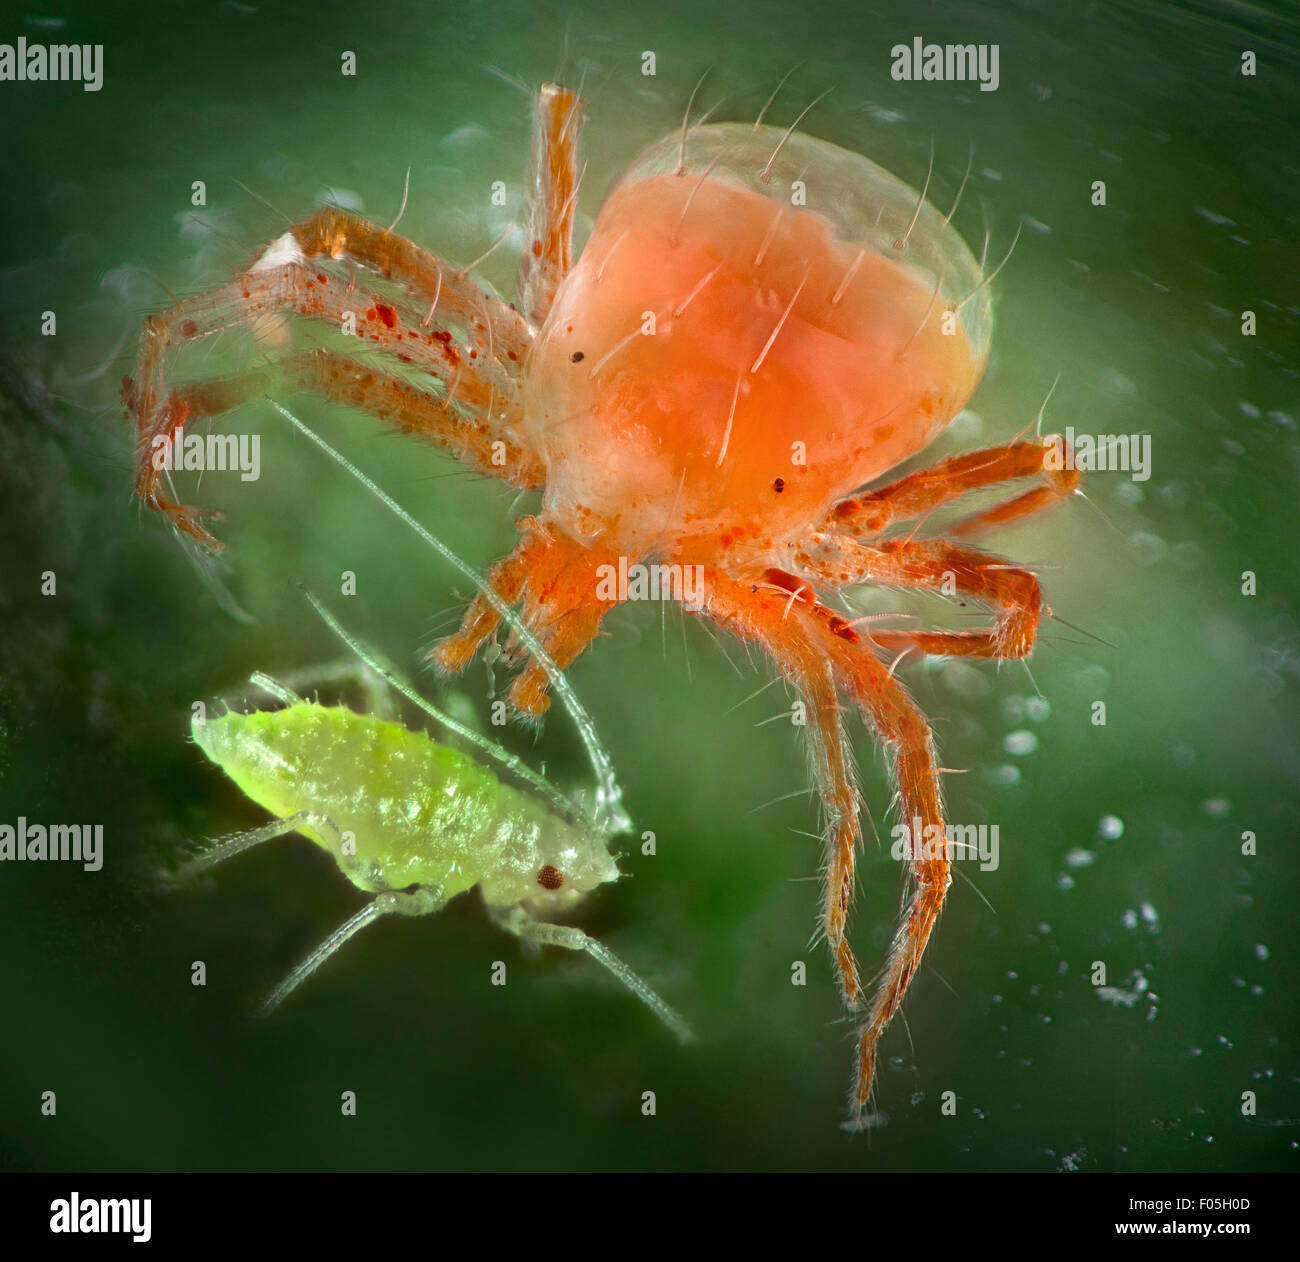 Predatory Mite. Whirligig Mite, Anystis baccarum feeding on an aphid, greenfly - Stock Image